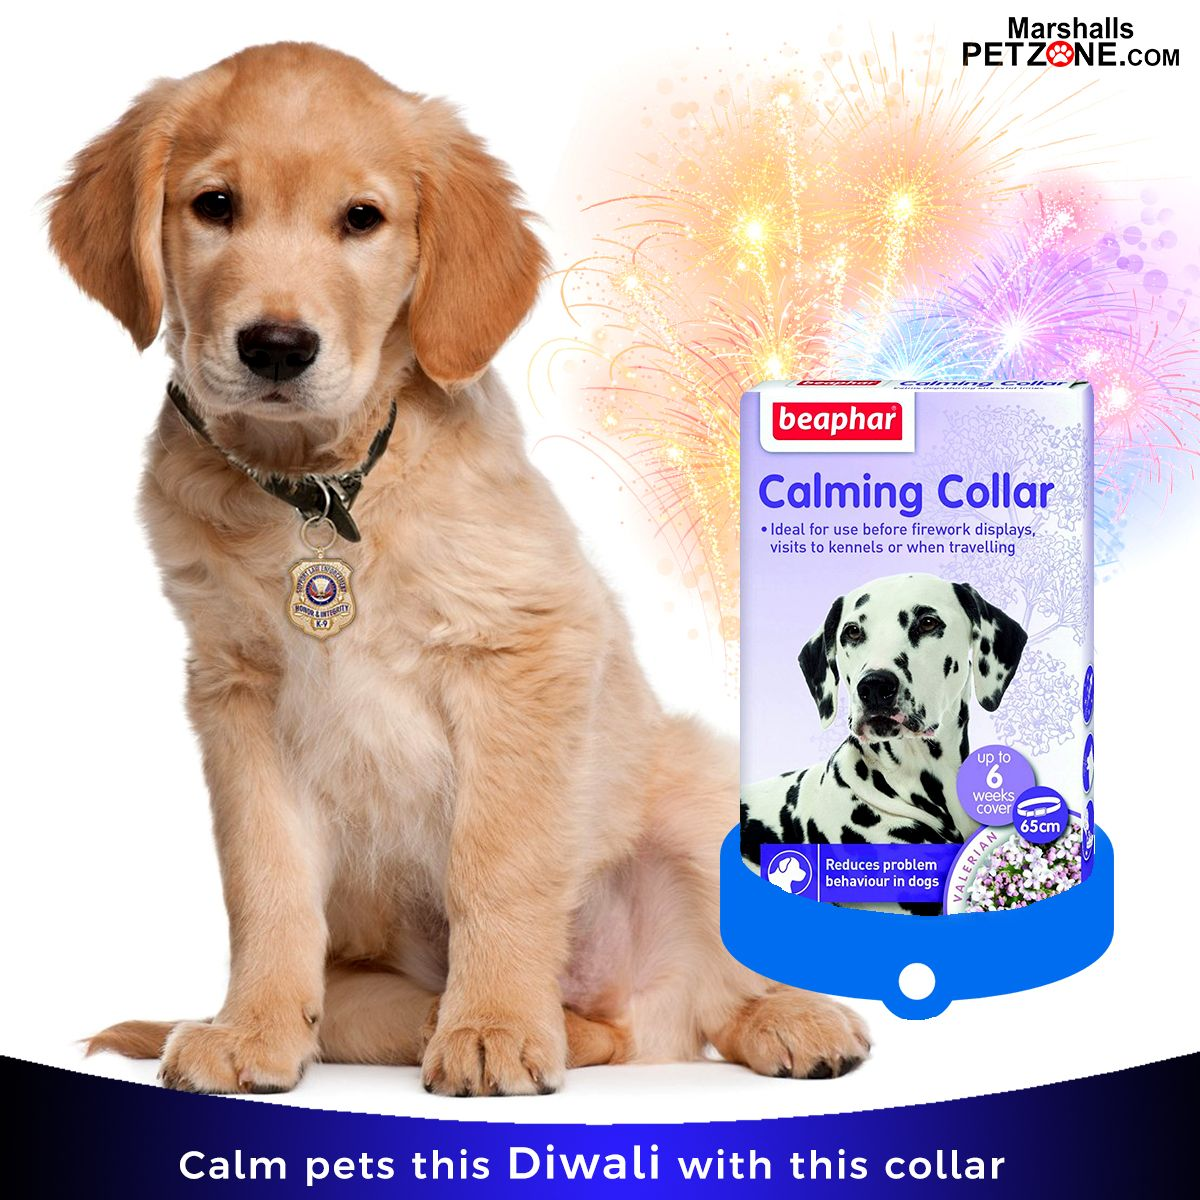 Beaphar calming collar for dogs at very lowest price